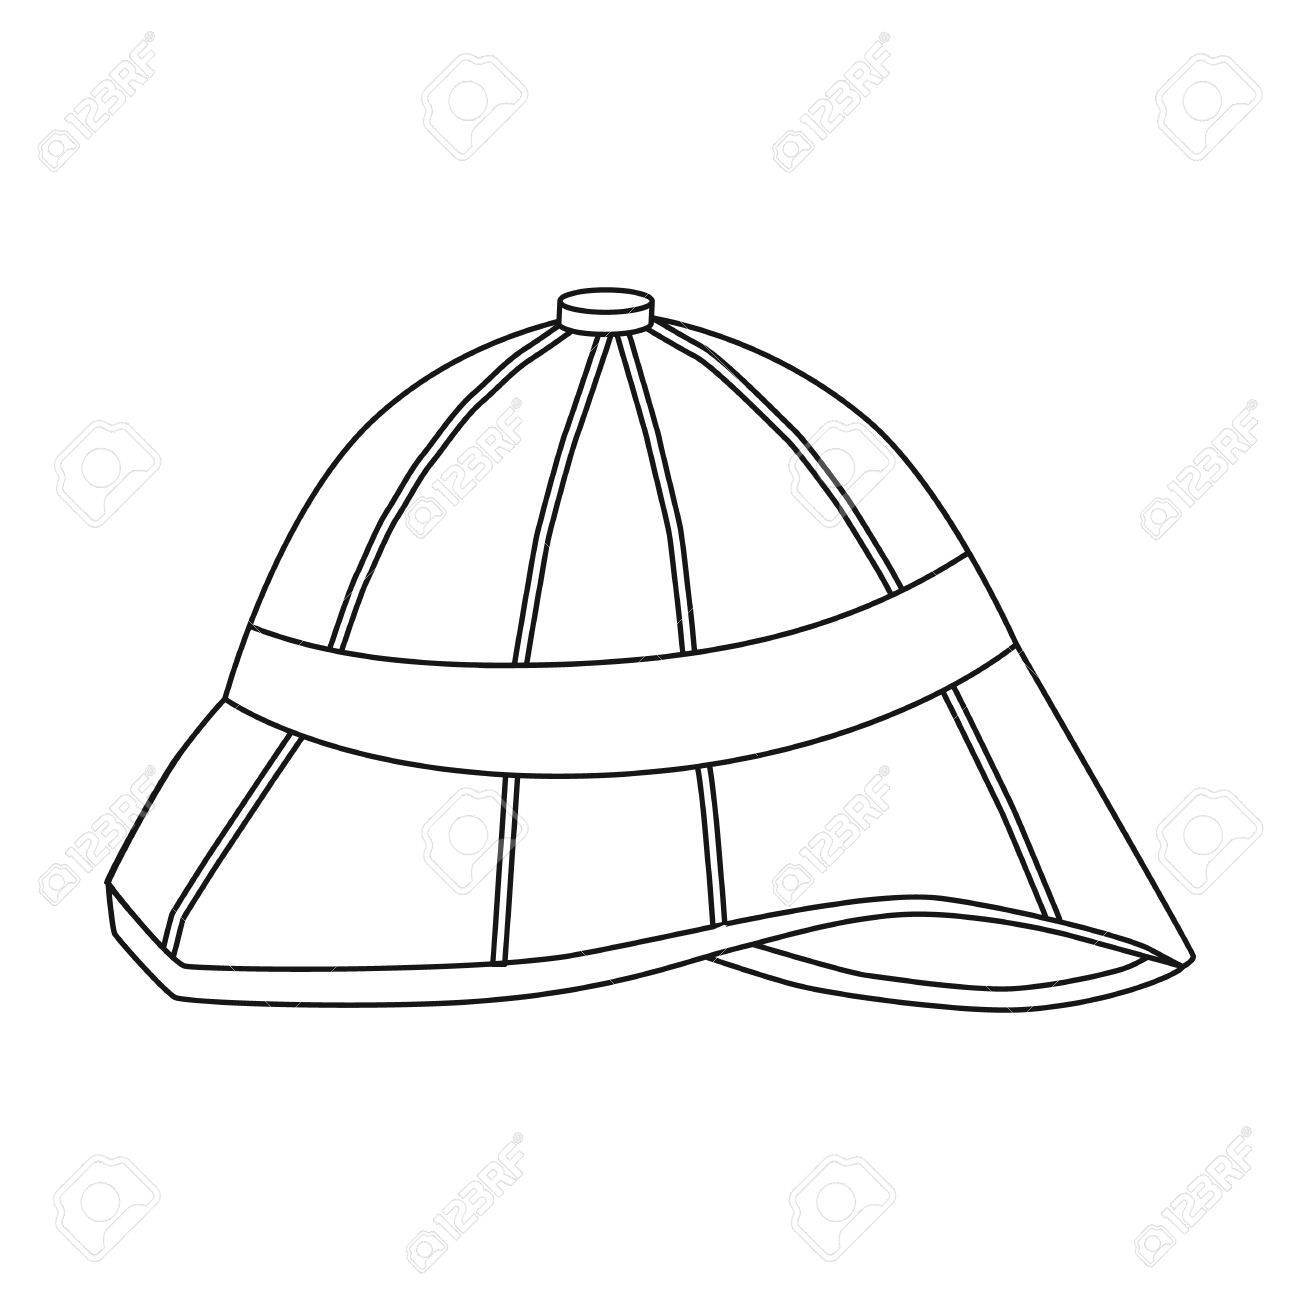 Pith helmet icon in outline style isolated on white background